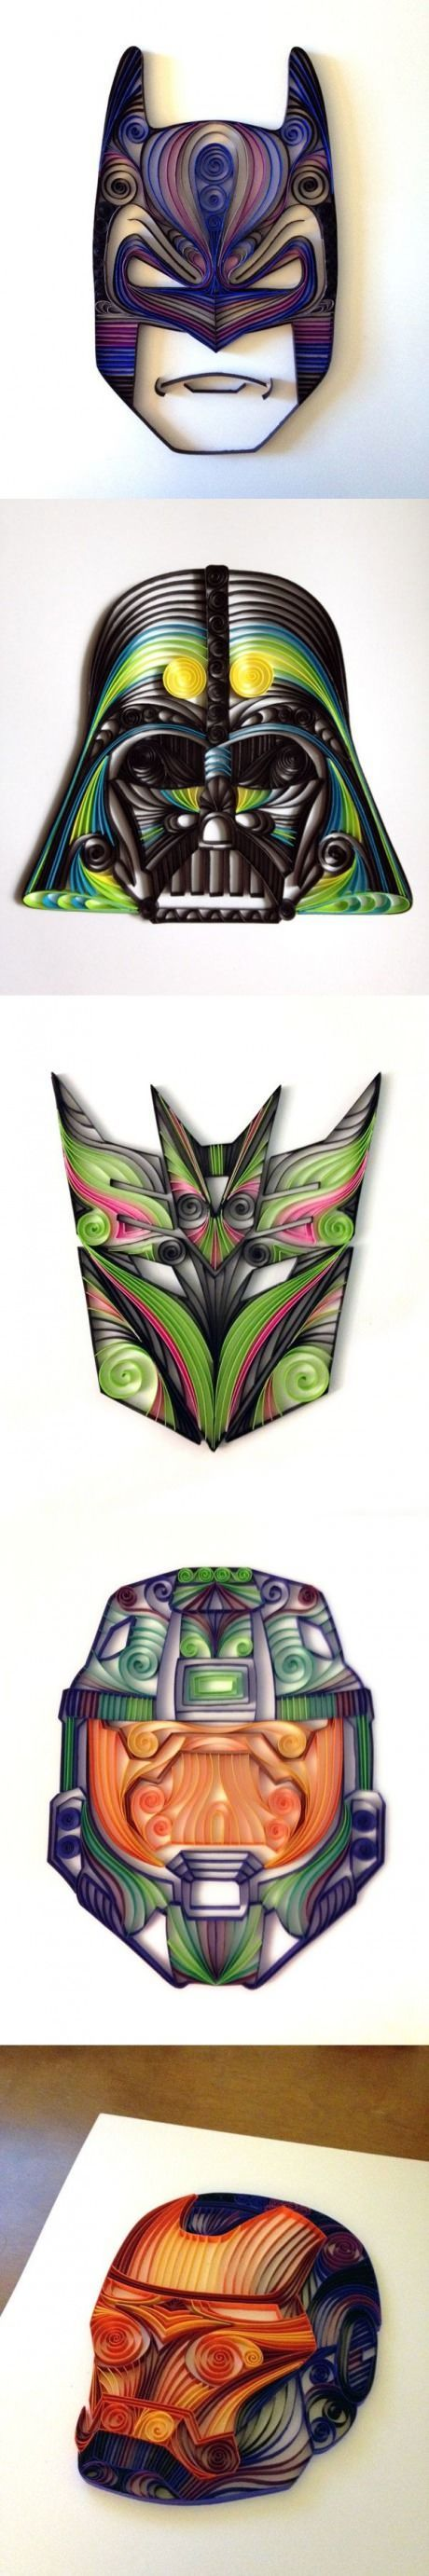 Oh. Emm. Gee. These are AWESOME!! Check it out @caitybird1 Geeky Paper Quilling, Batman, Vader, Decepticon, Iron Man: